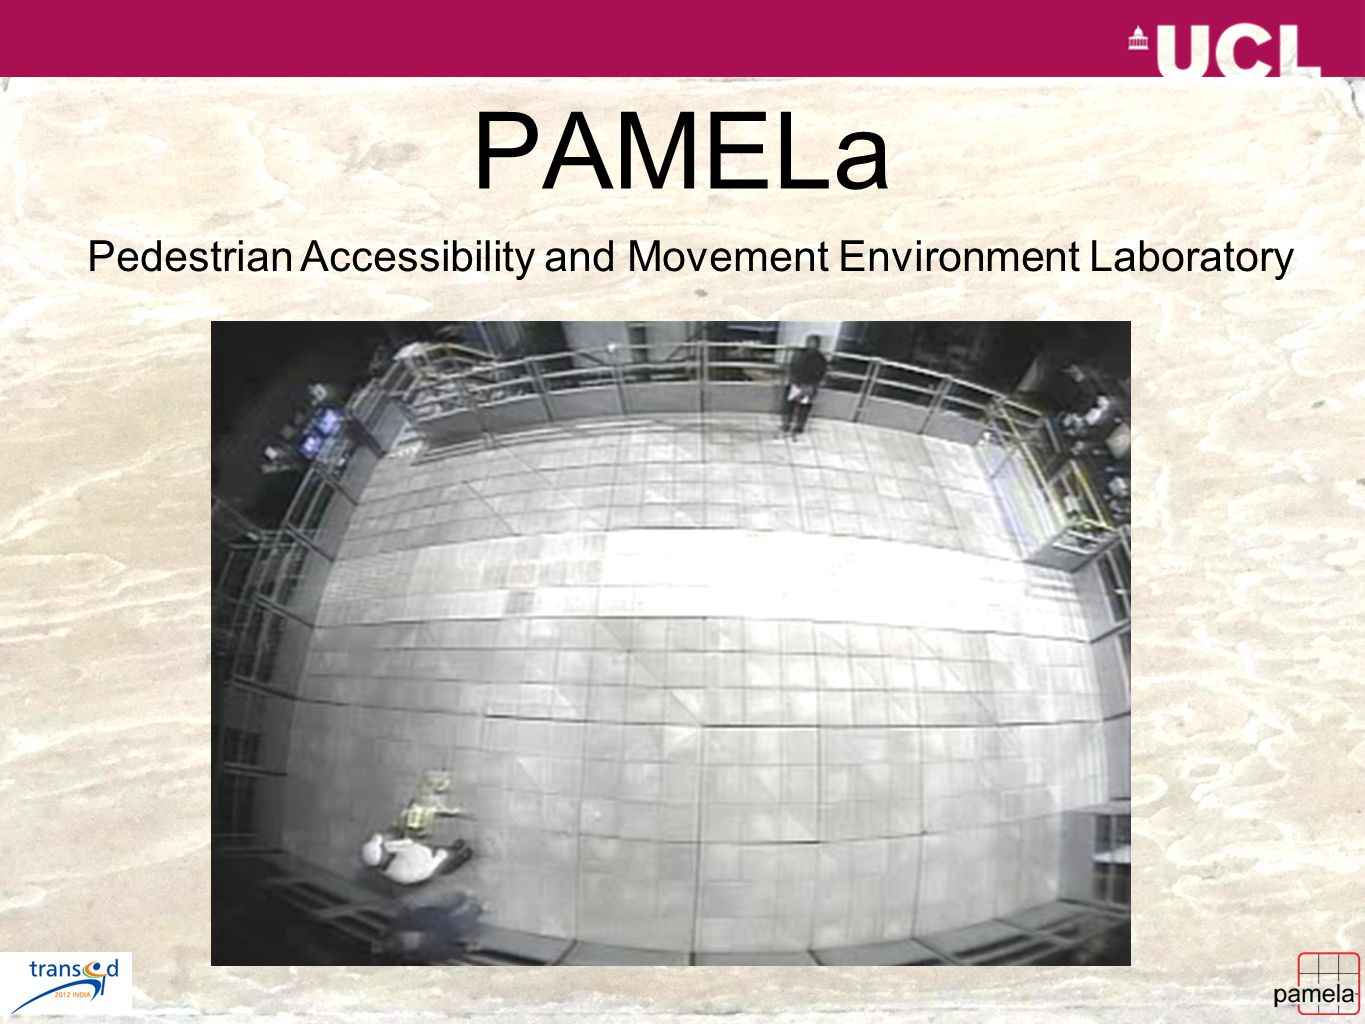 PAMELa Pedestrian Accessibility and Movement Environment Laboratory